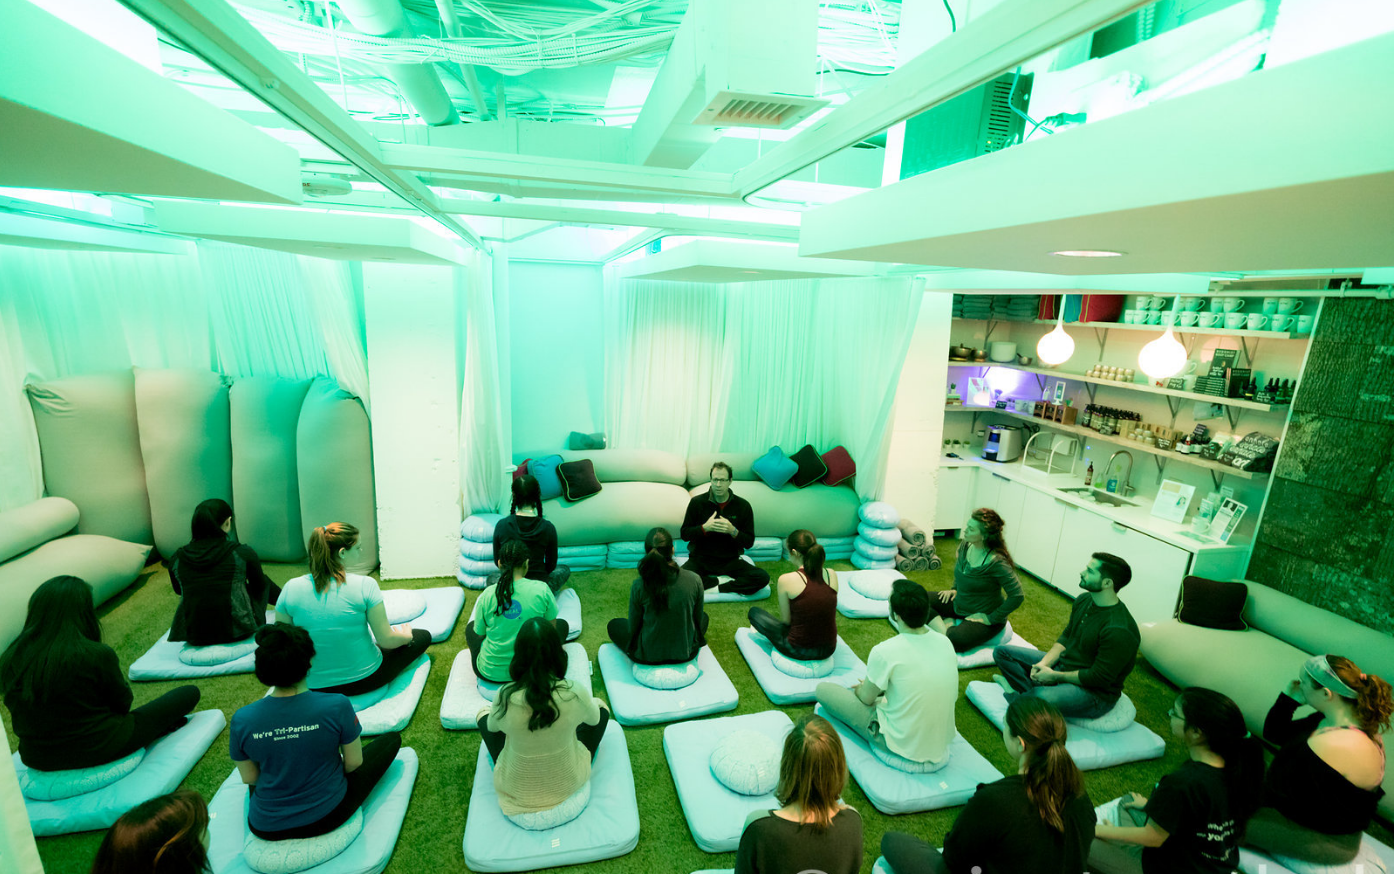 New members can attend unlimited classes for two weeks for $25. (Image: Courtesy Recharj)